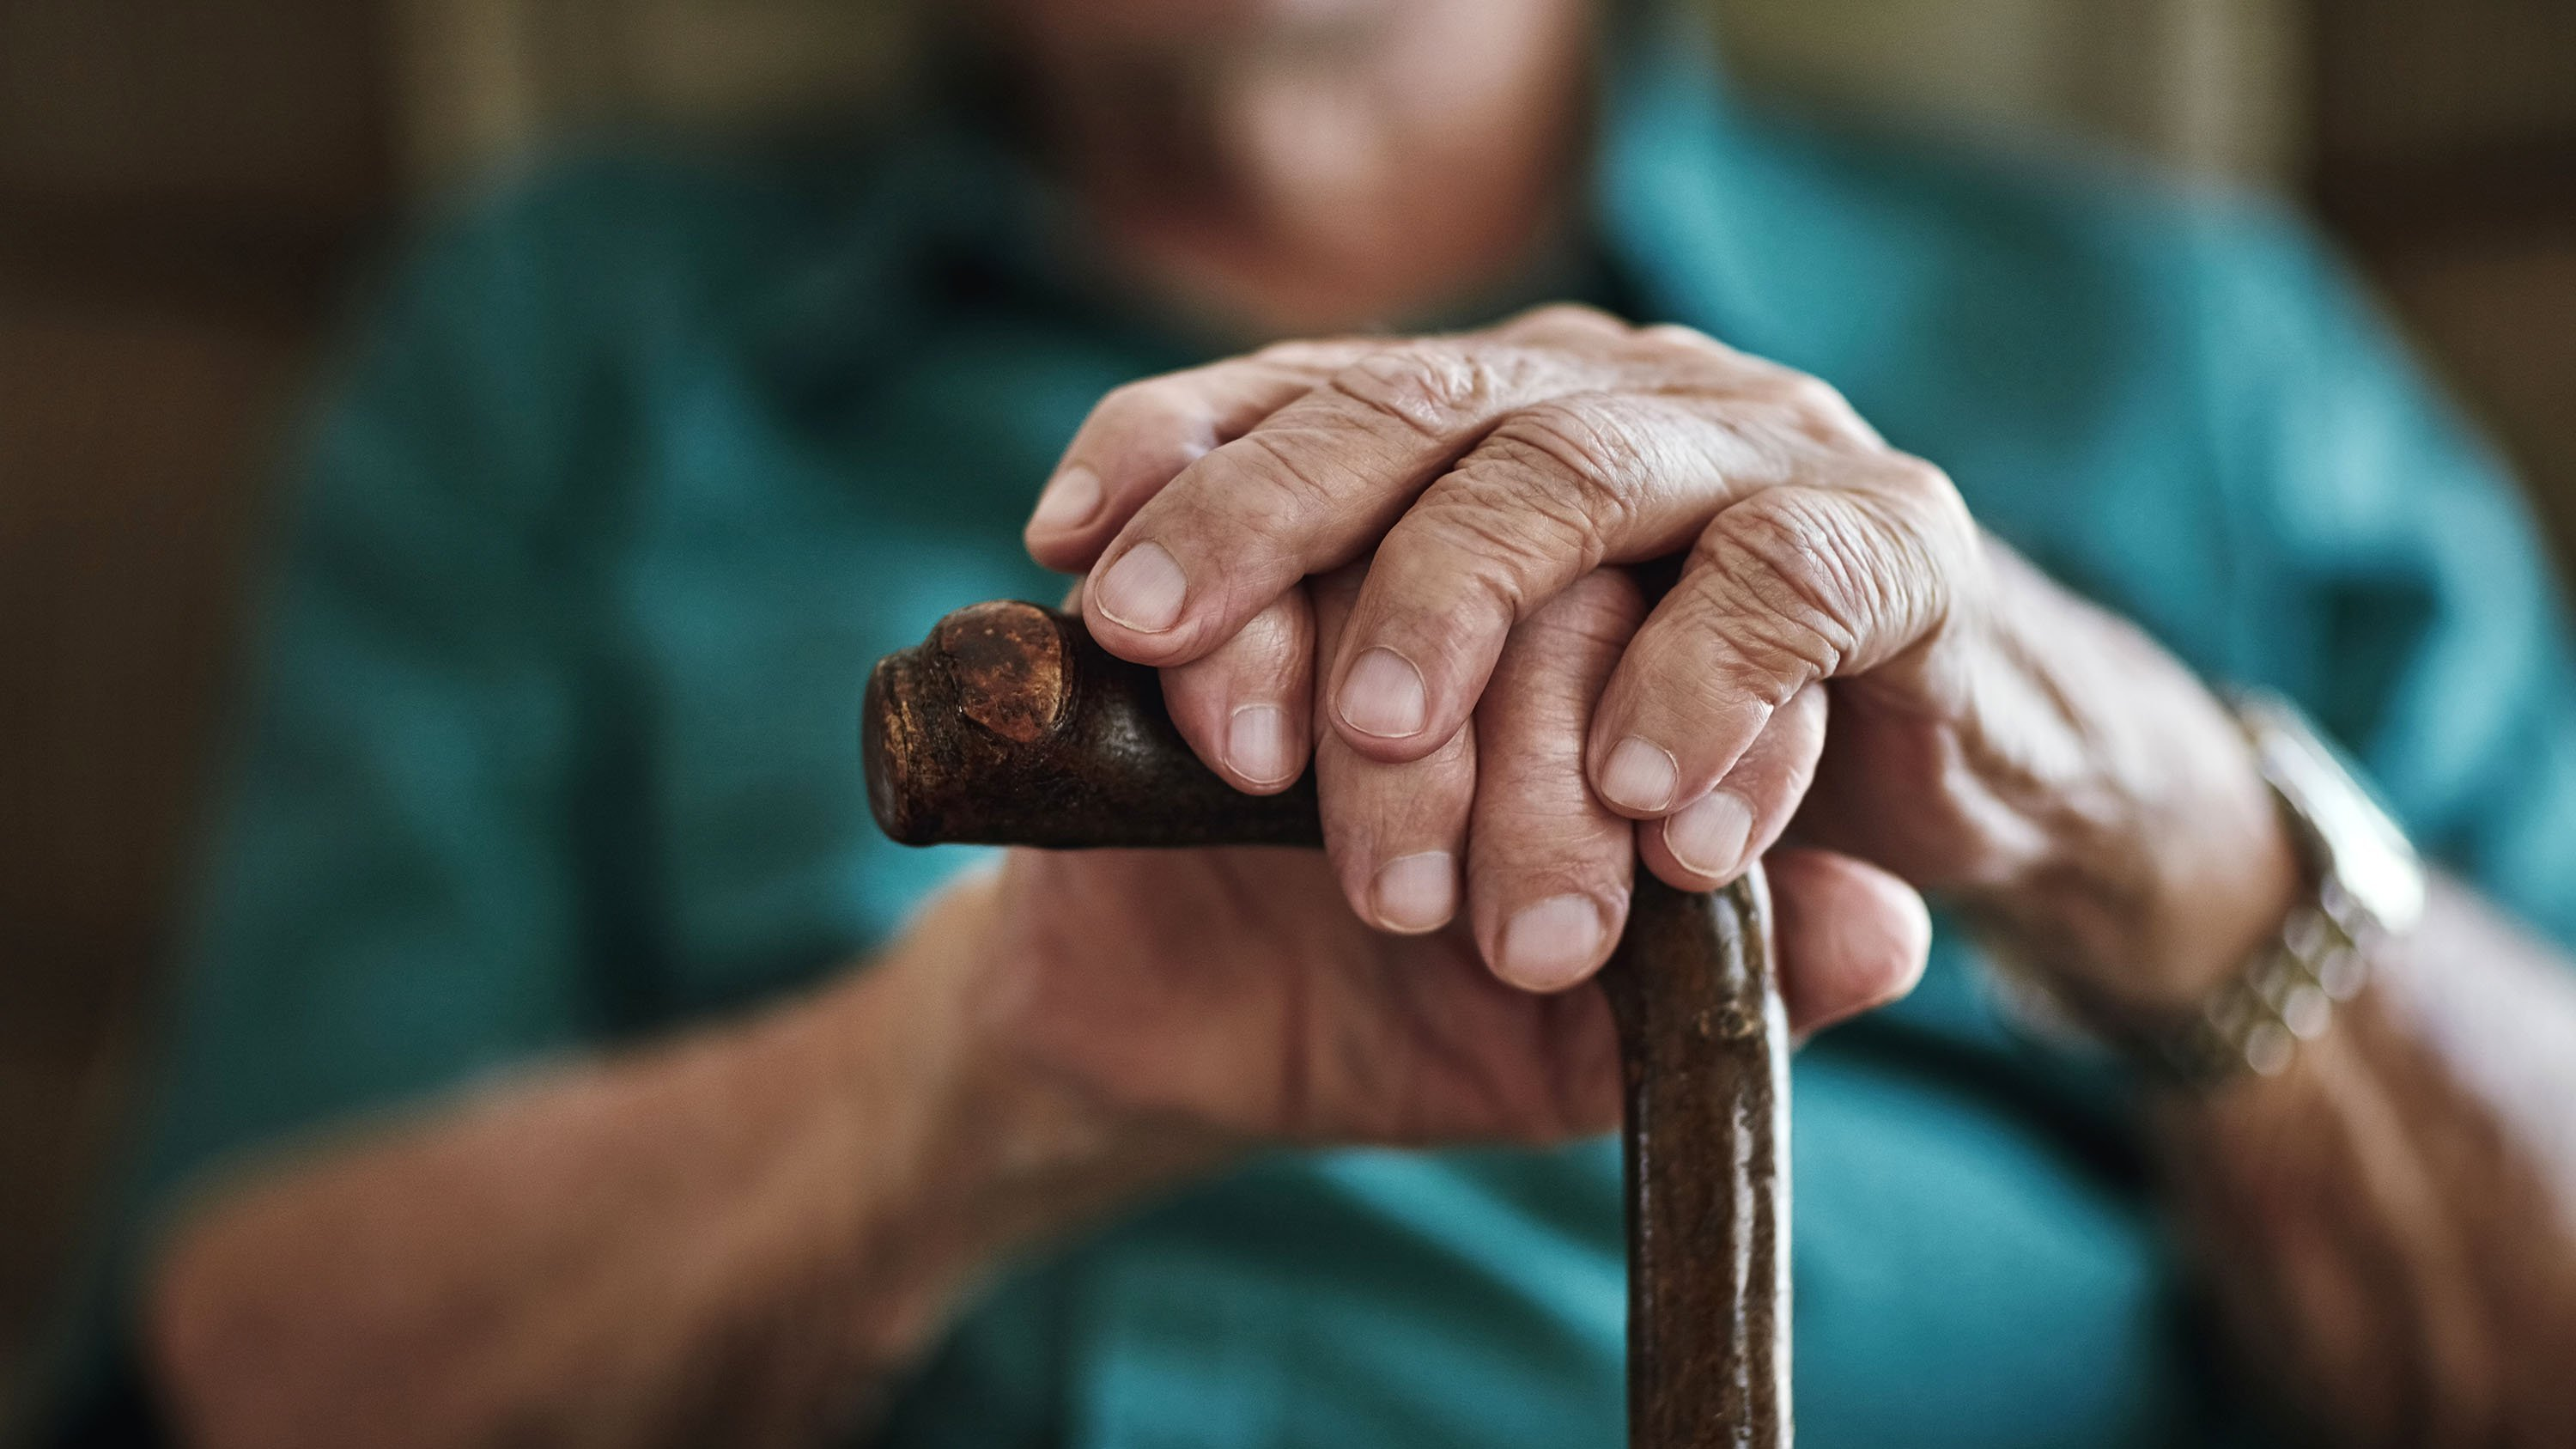 More than 30,000 Medicaid recipients, including those in nursing homes and group homes in Louisiana could lose their benefits and face eviction due to proposed state cuts.  Credit: Peopleimages/E+/Getty Images